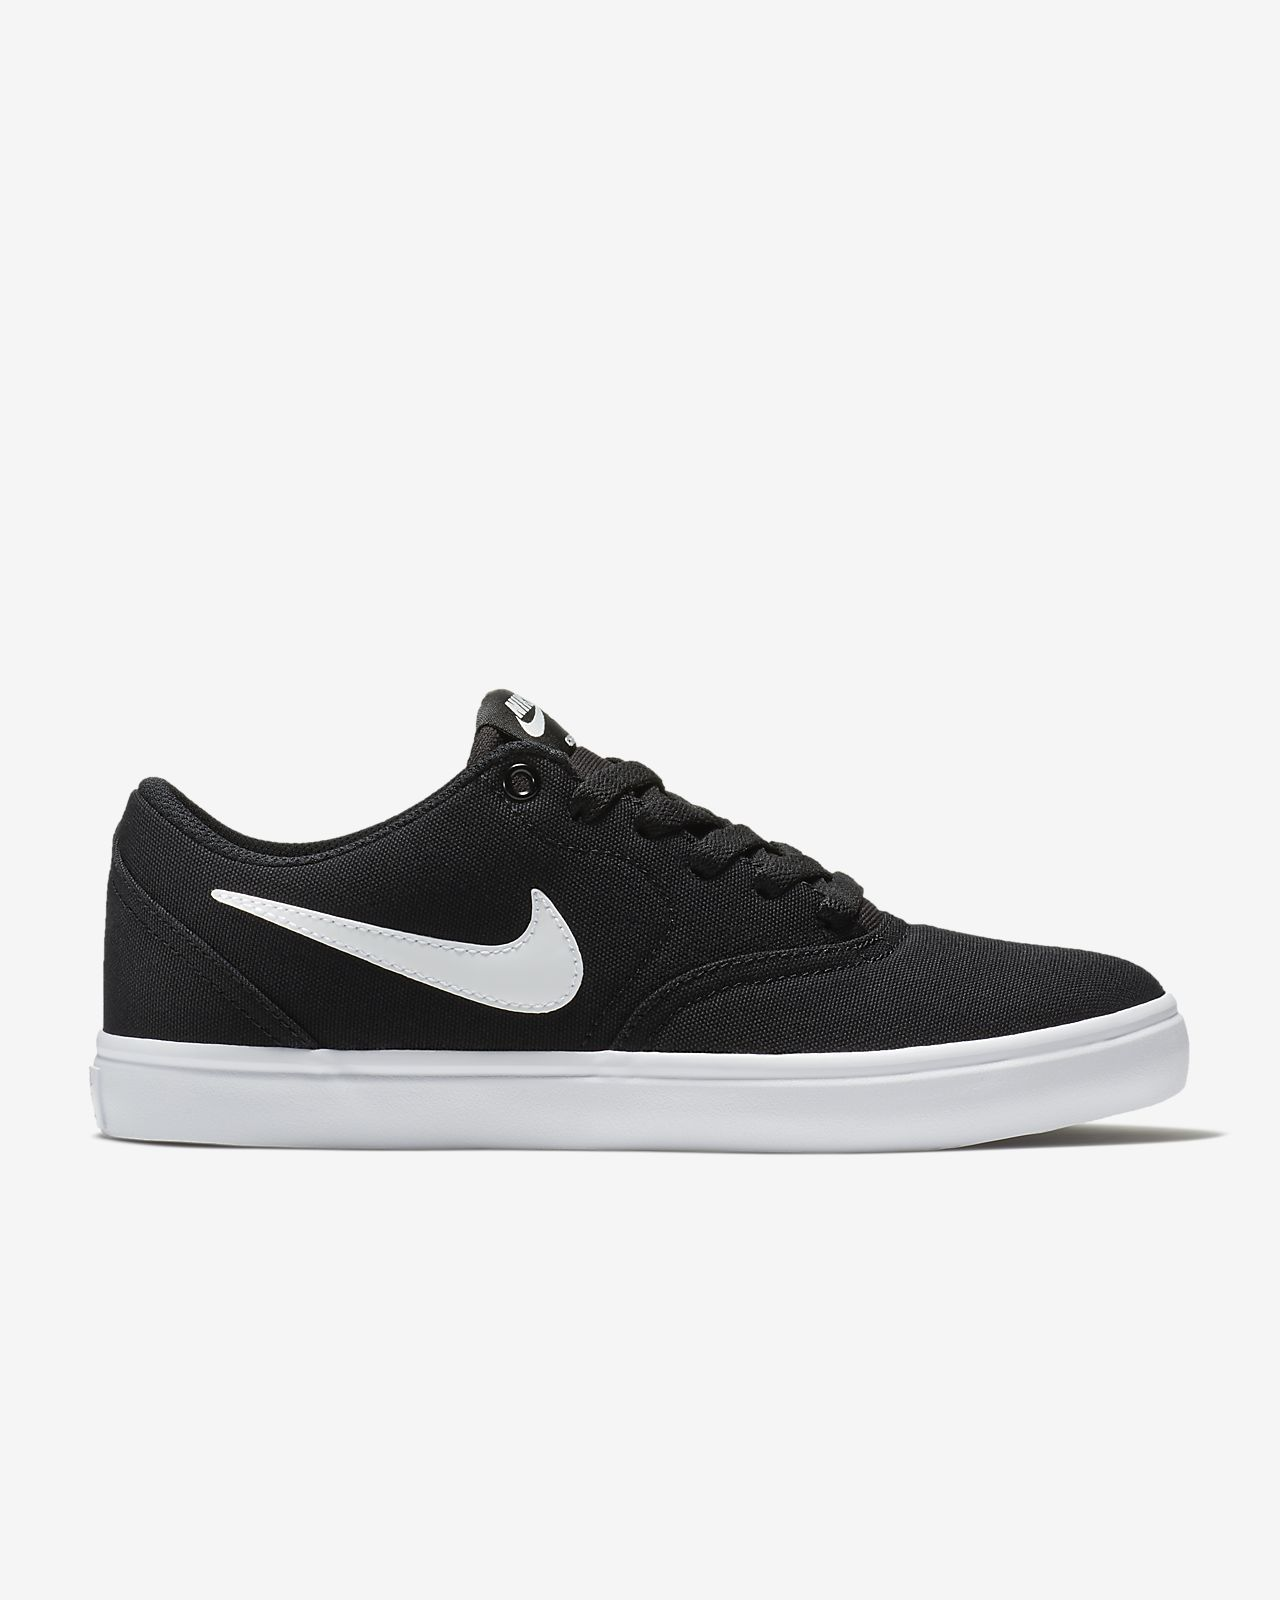 Nike SB Check Solarsoft Canvas Women\u0027s Skateboarding Shoe